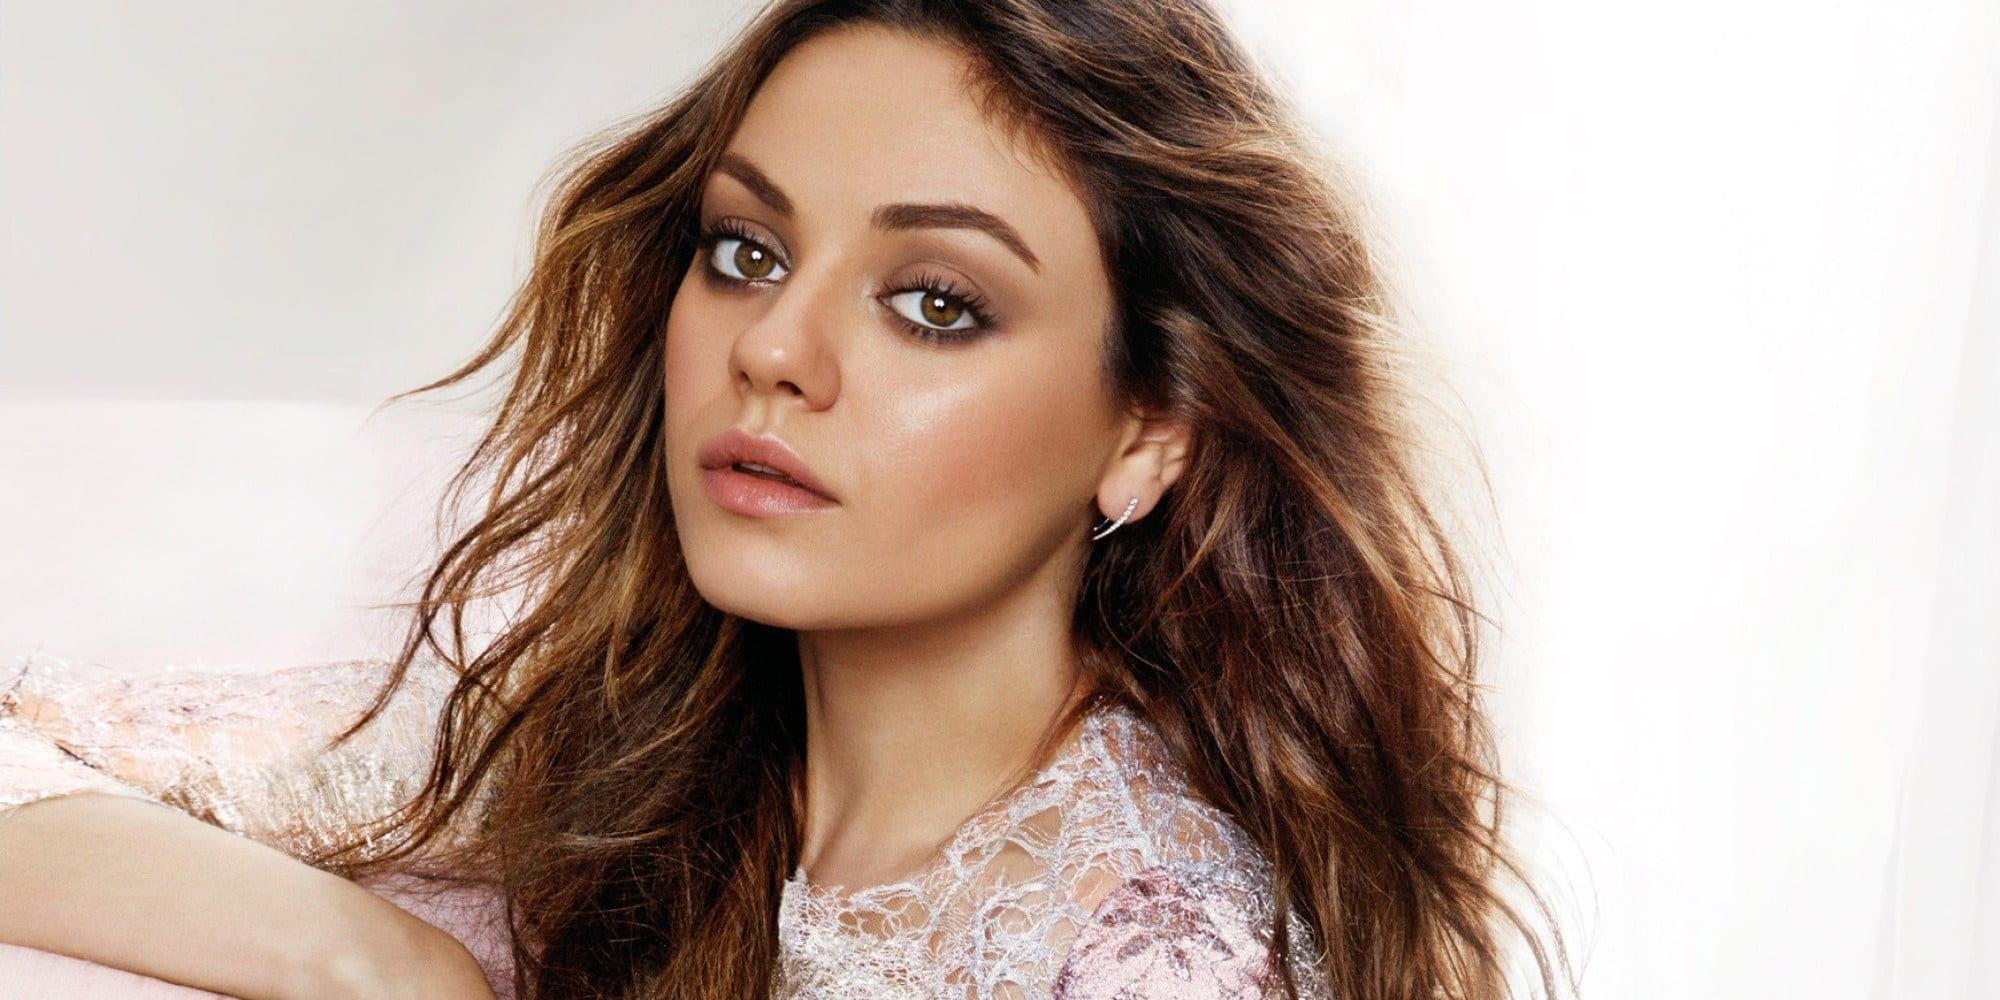 Mila-Kunis Cute Jewish Girls - 30 Most Pretty Jewish Women in the World